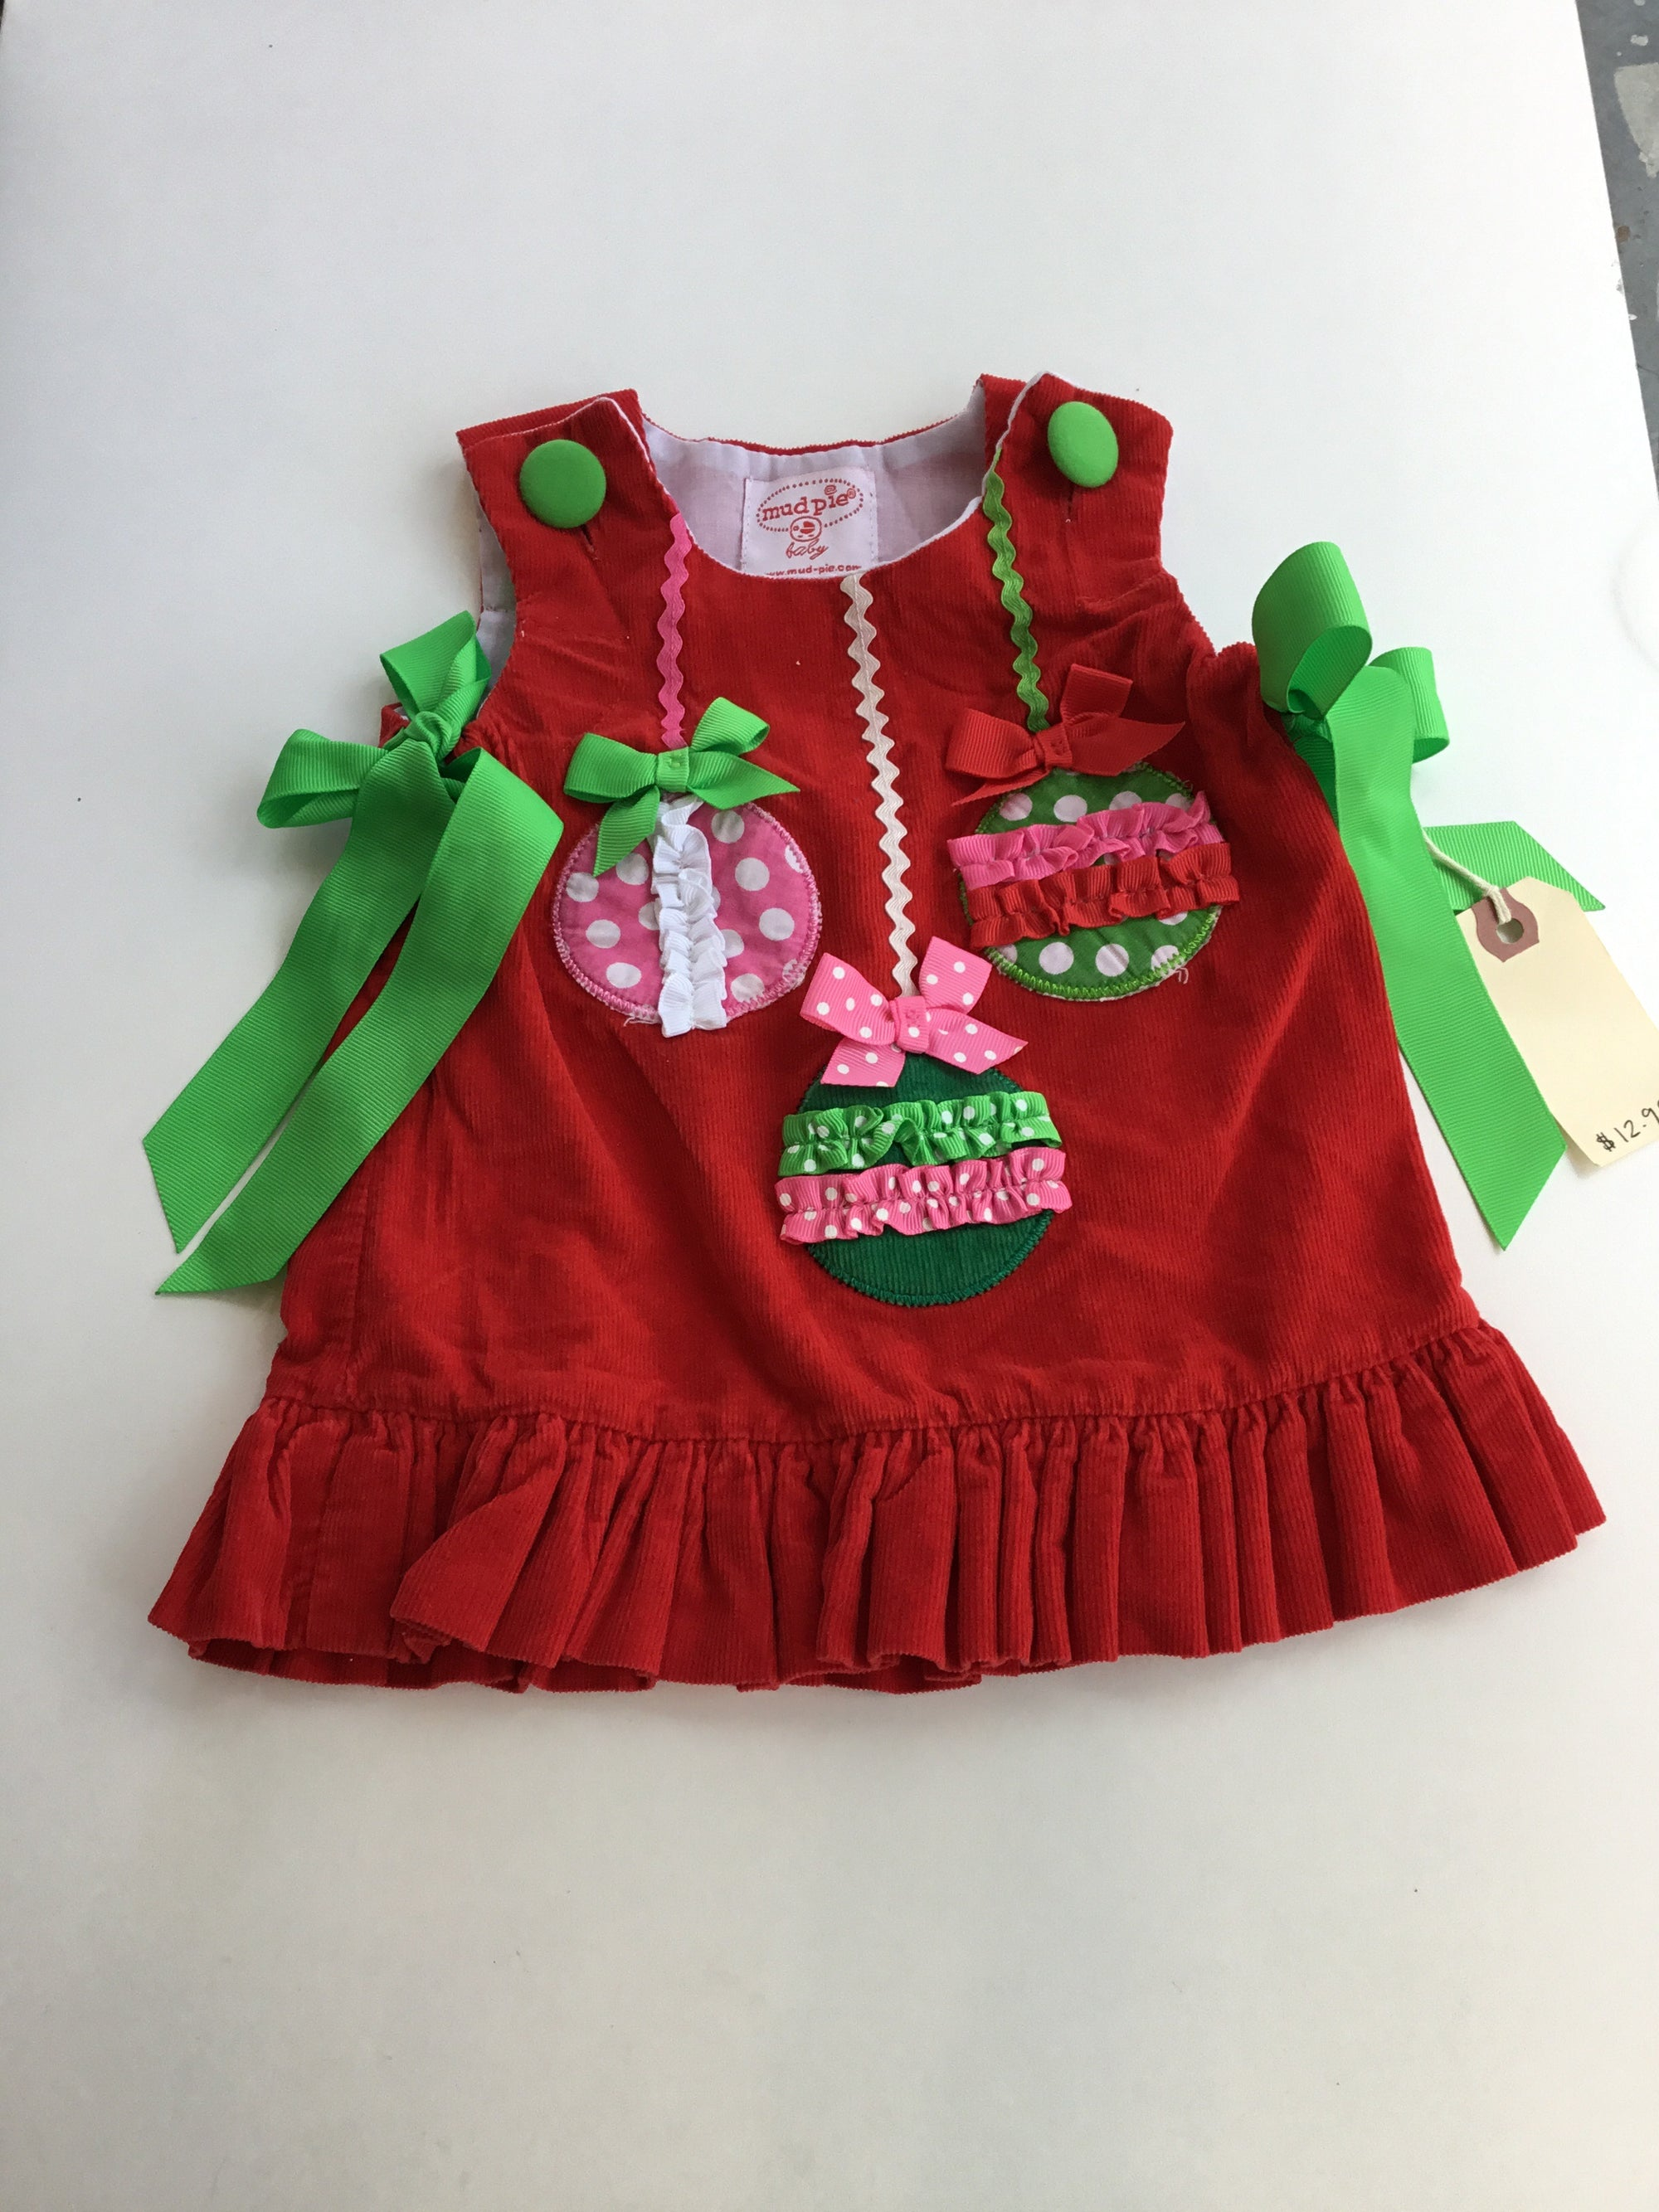 Resale 0-6 months Mud Pie Red Ornament Dress